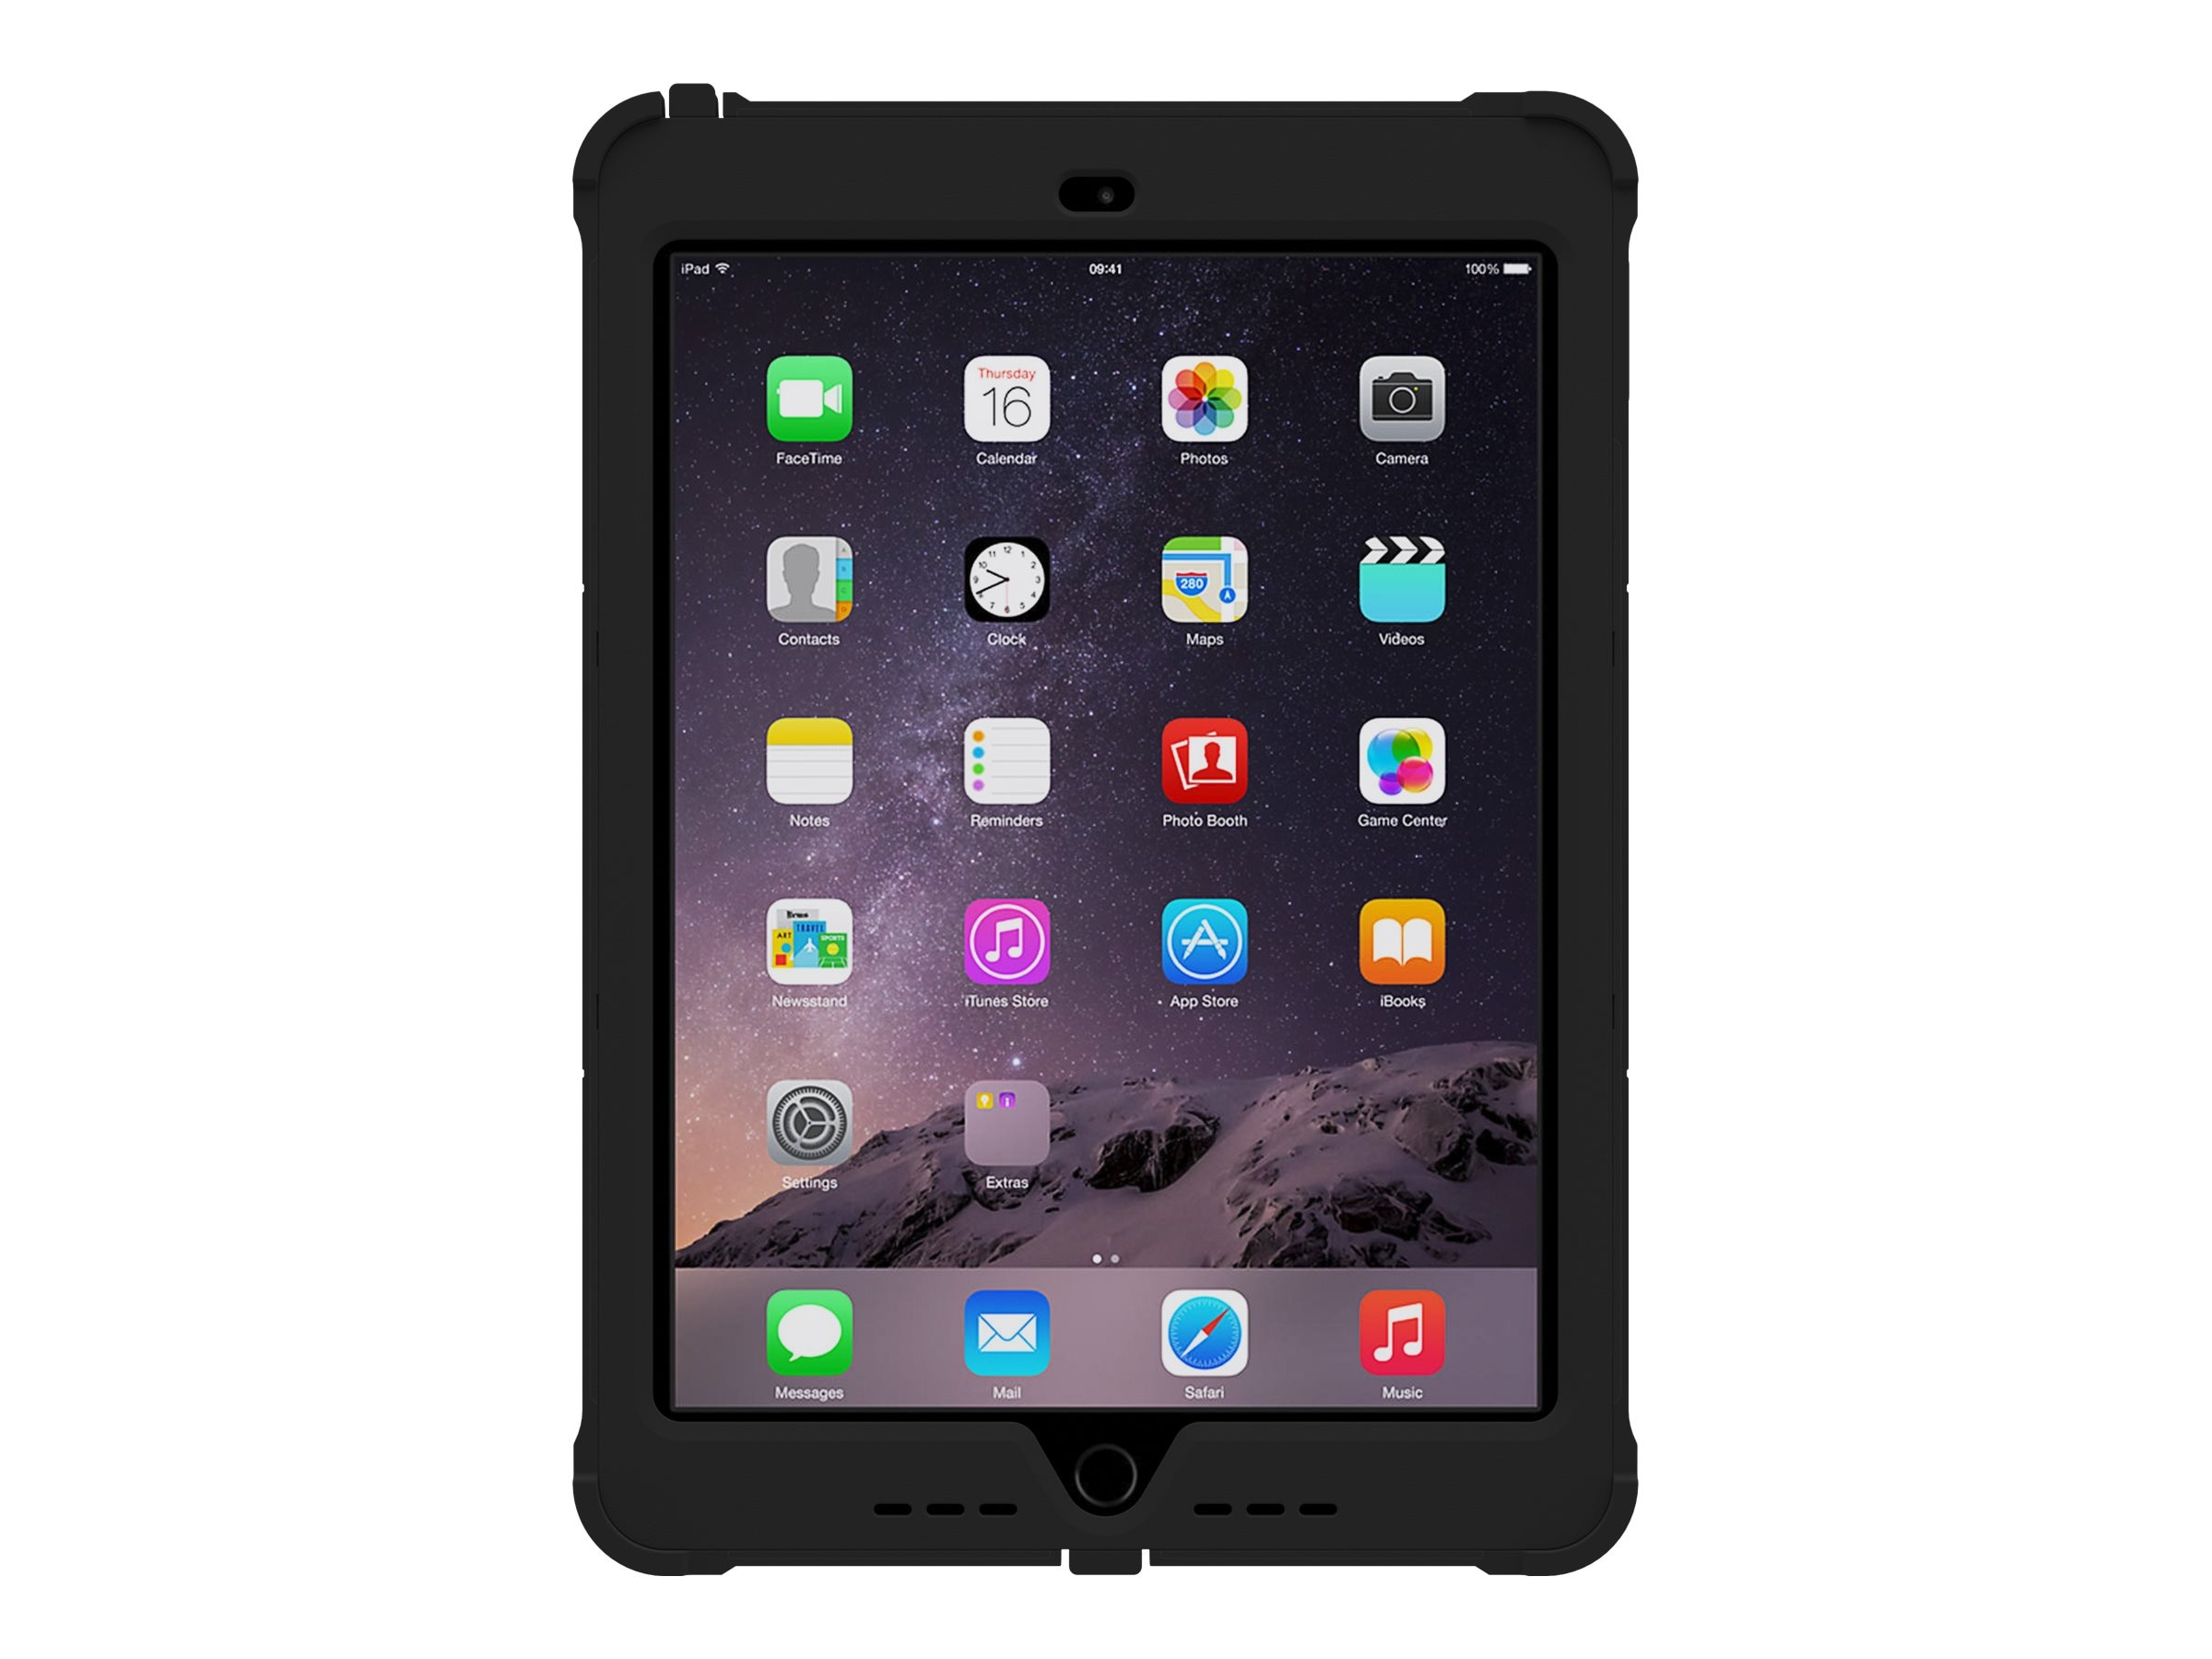 Trident Case 2015 Kraken AMS Case for iPad Air 2, Black, KN-APIPA2-BK000